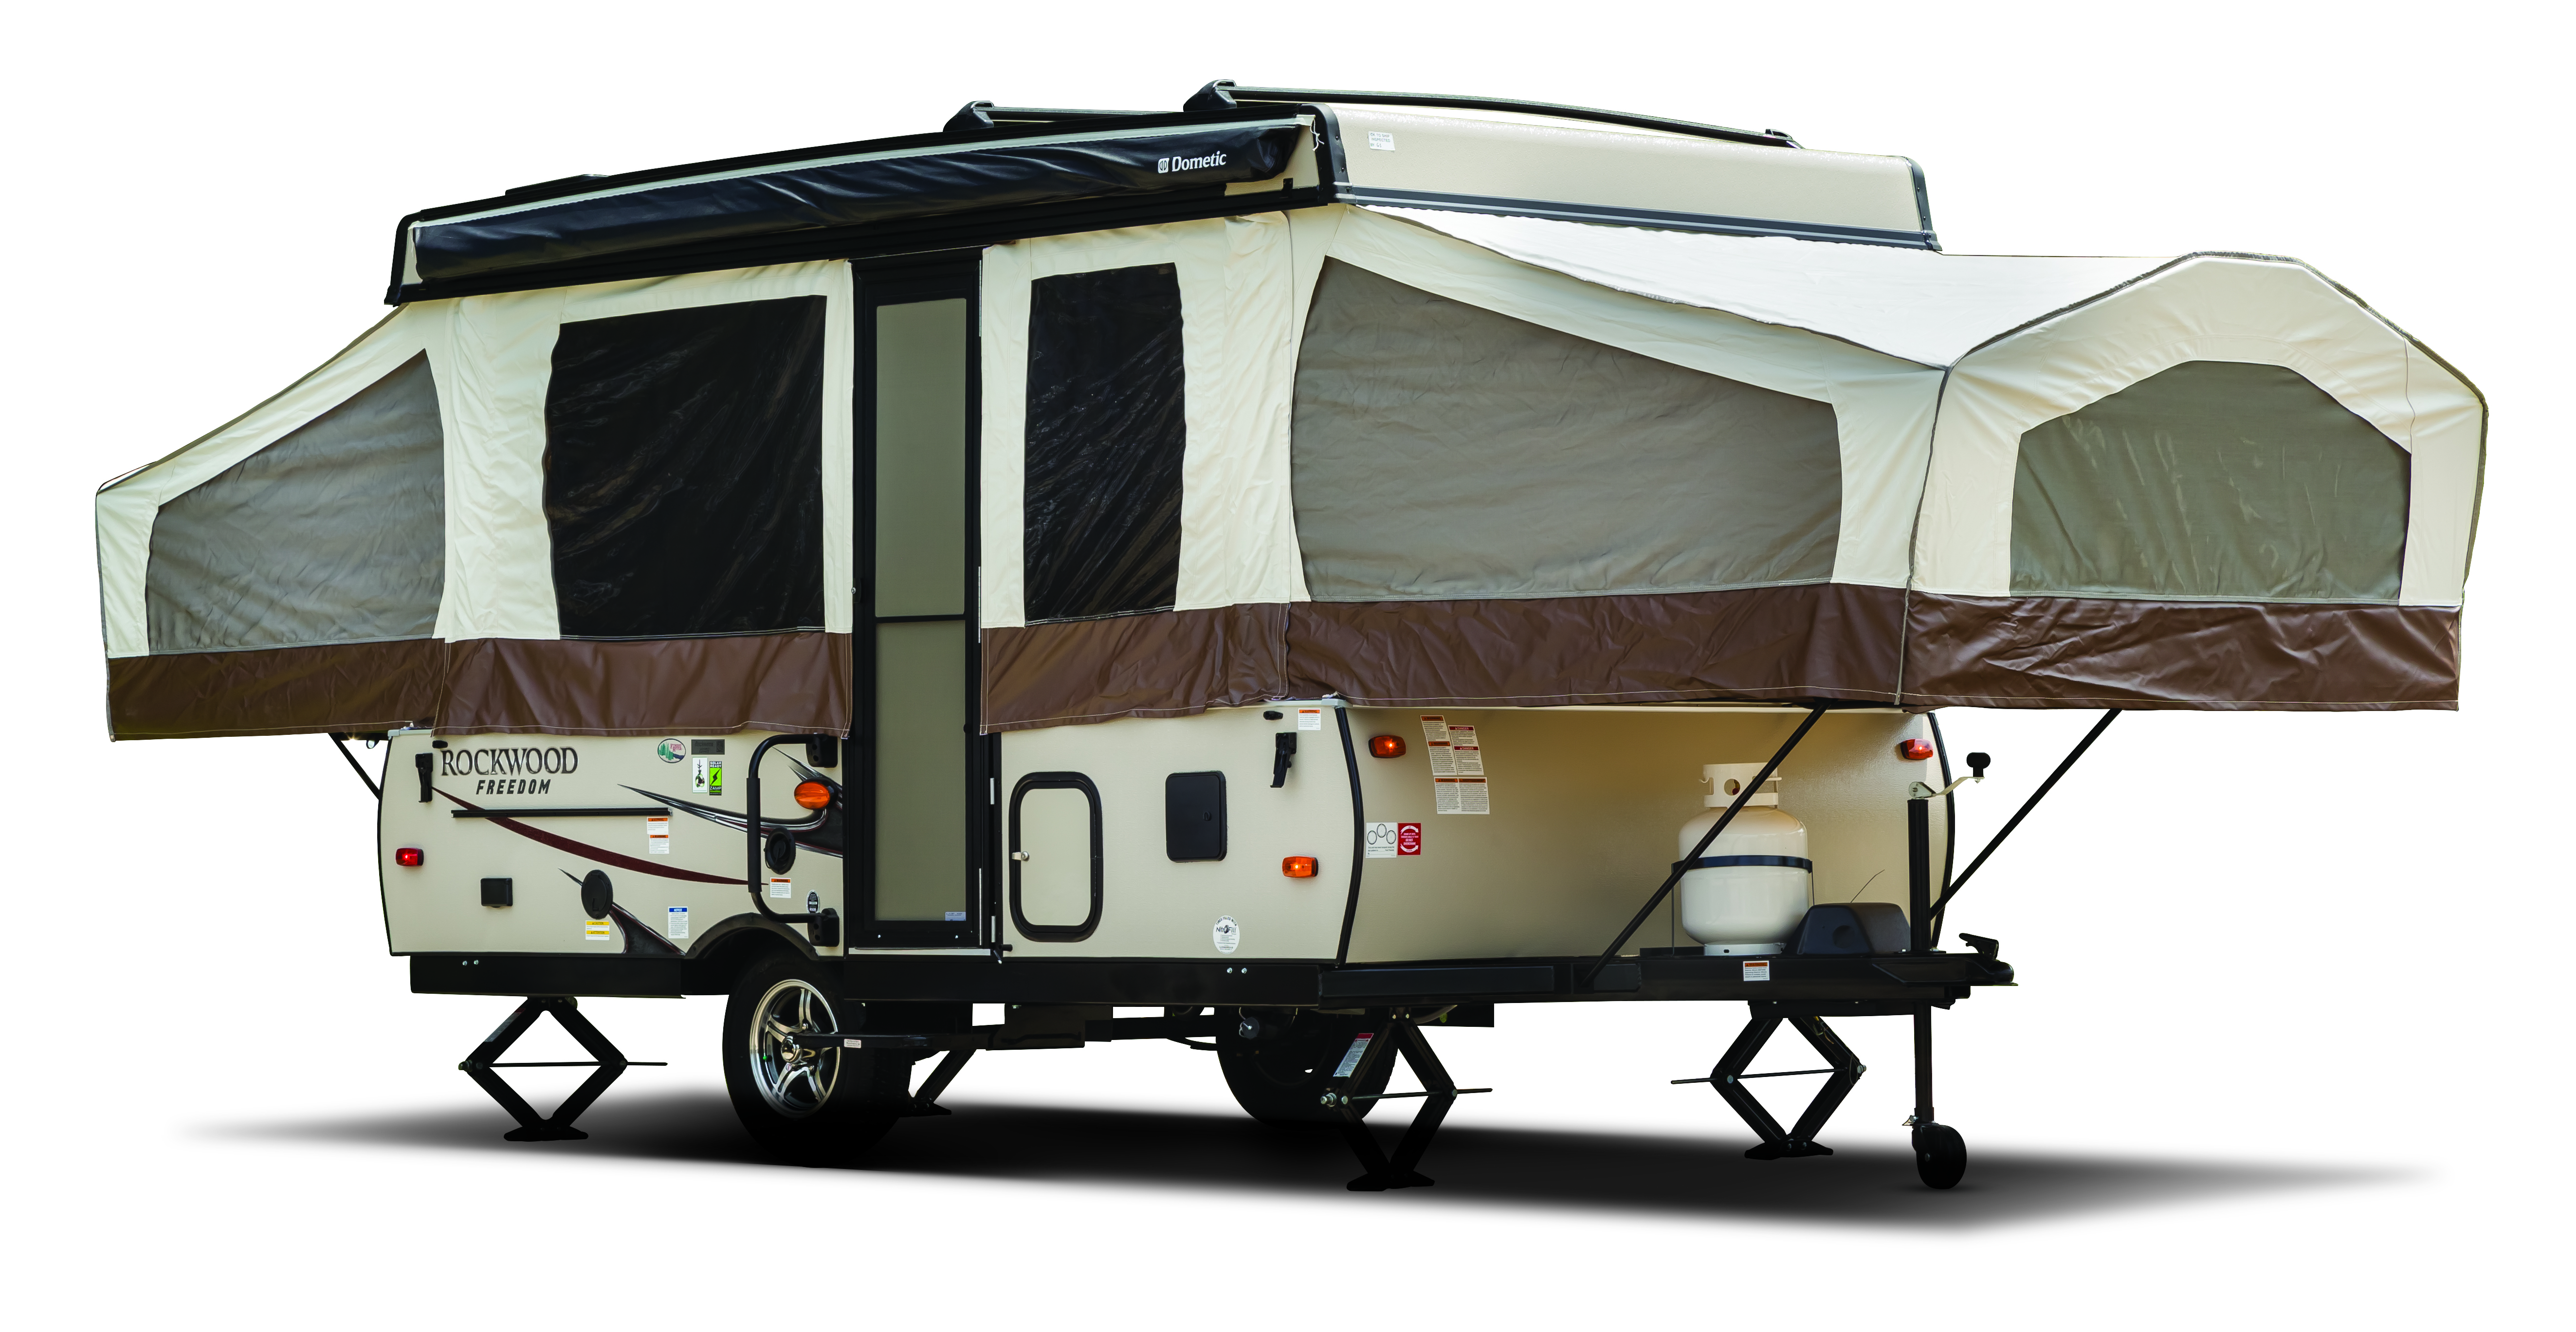 Best Towable Rvs For The Money